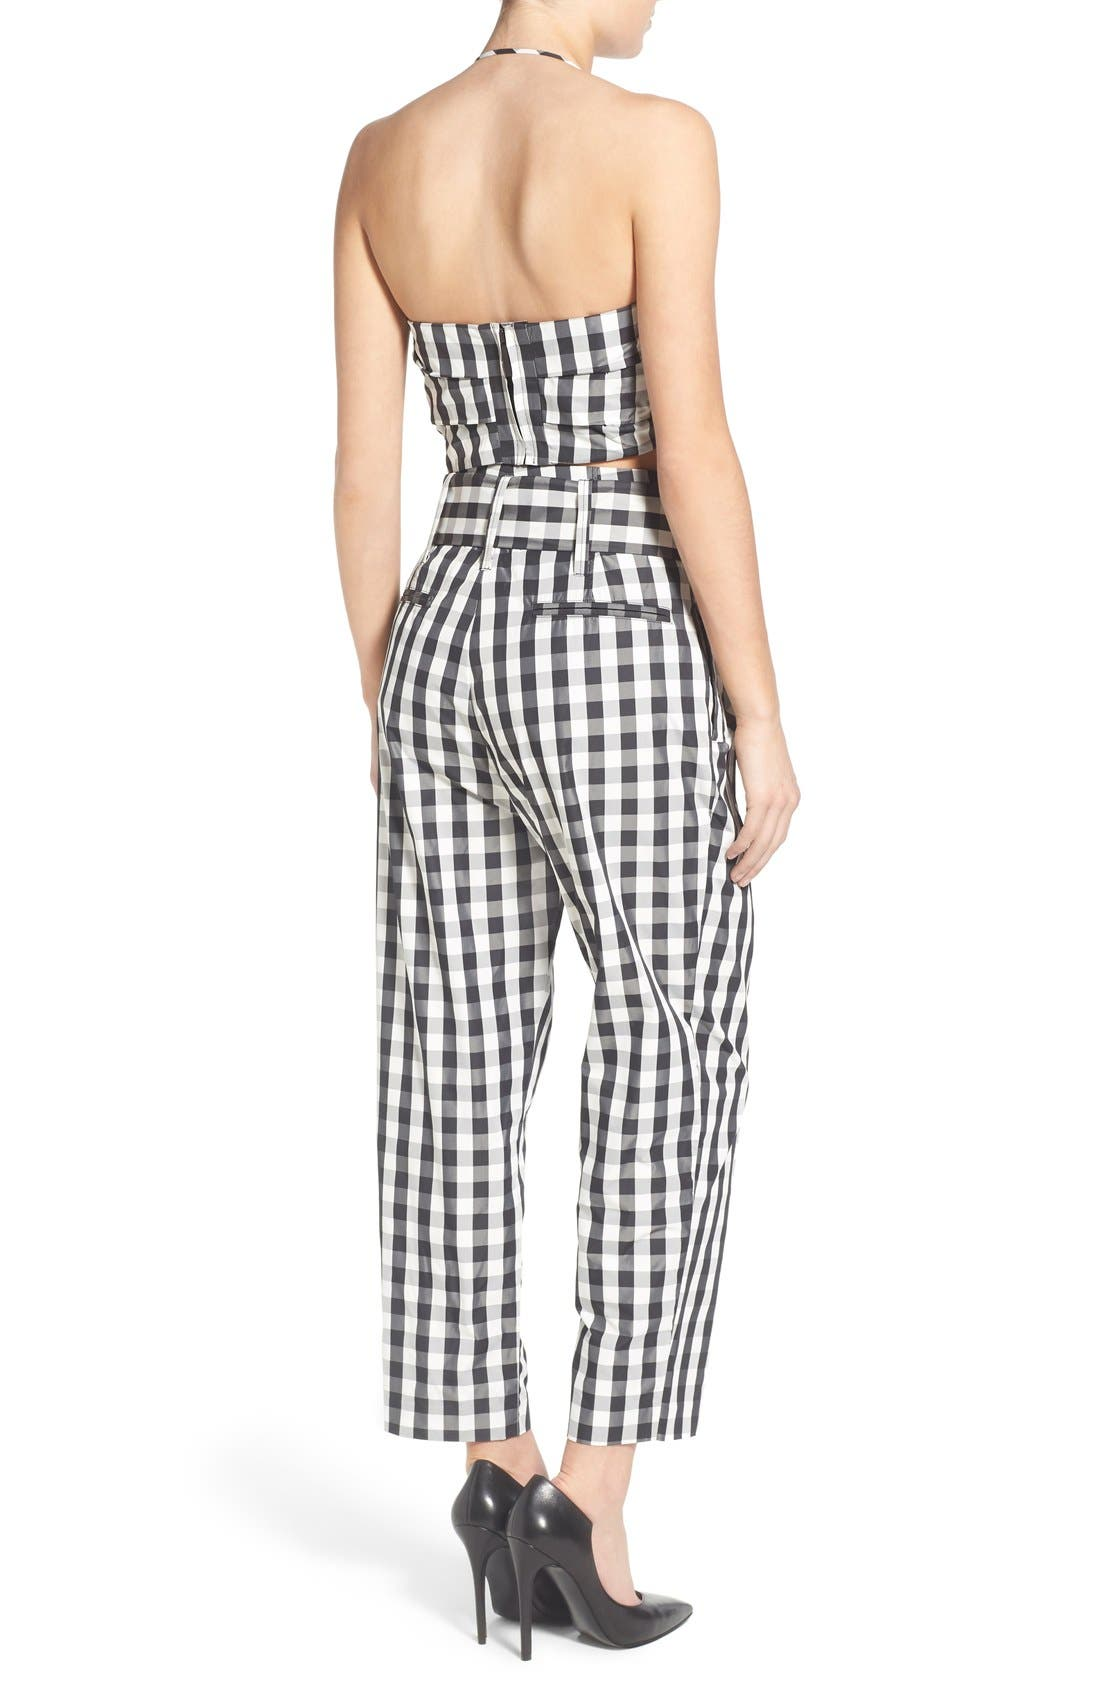 KENDALL + KYLIE, Gingham High Rise Crop Pants, Alternate thumbnail 4, color, 003